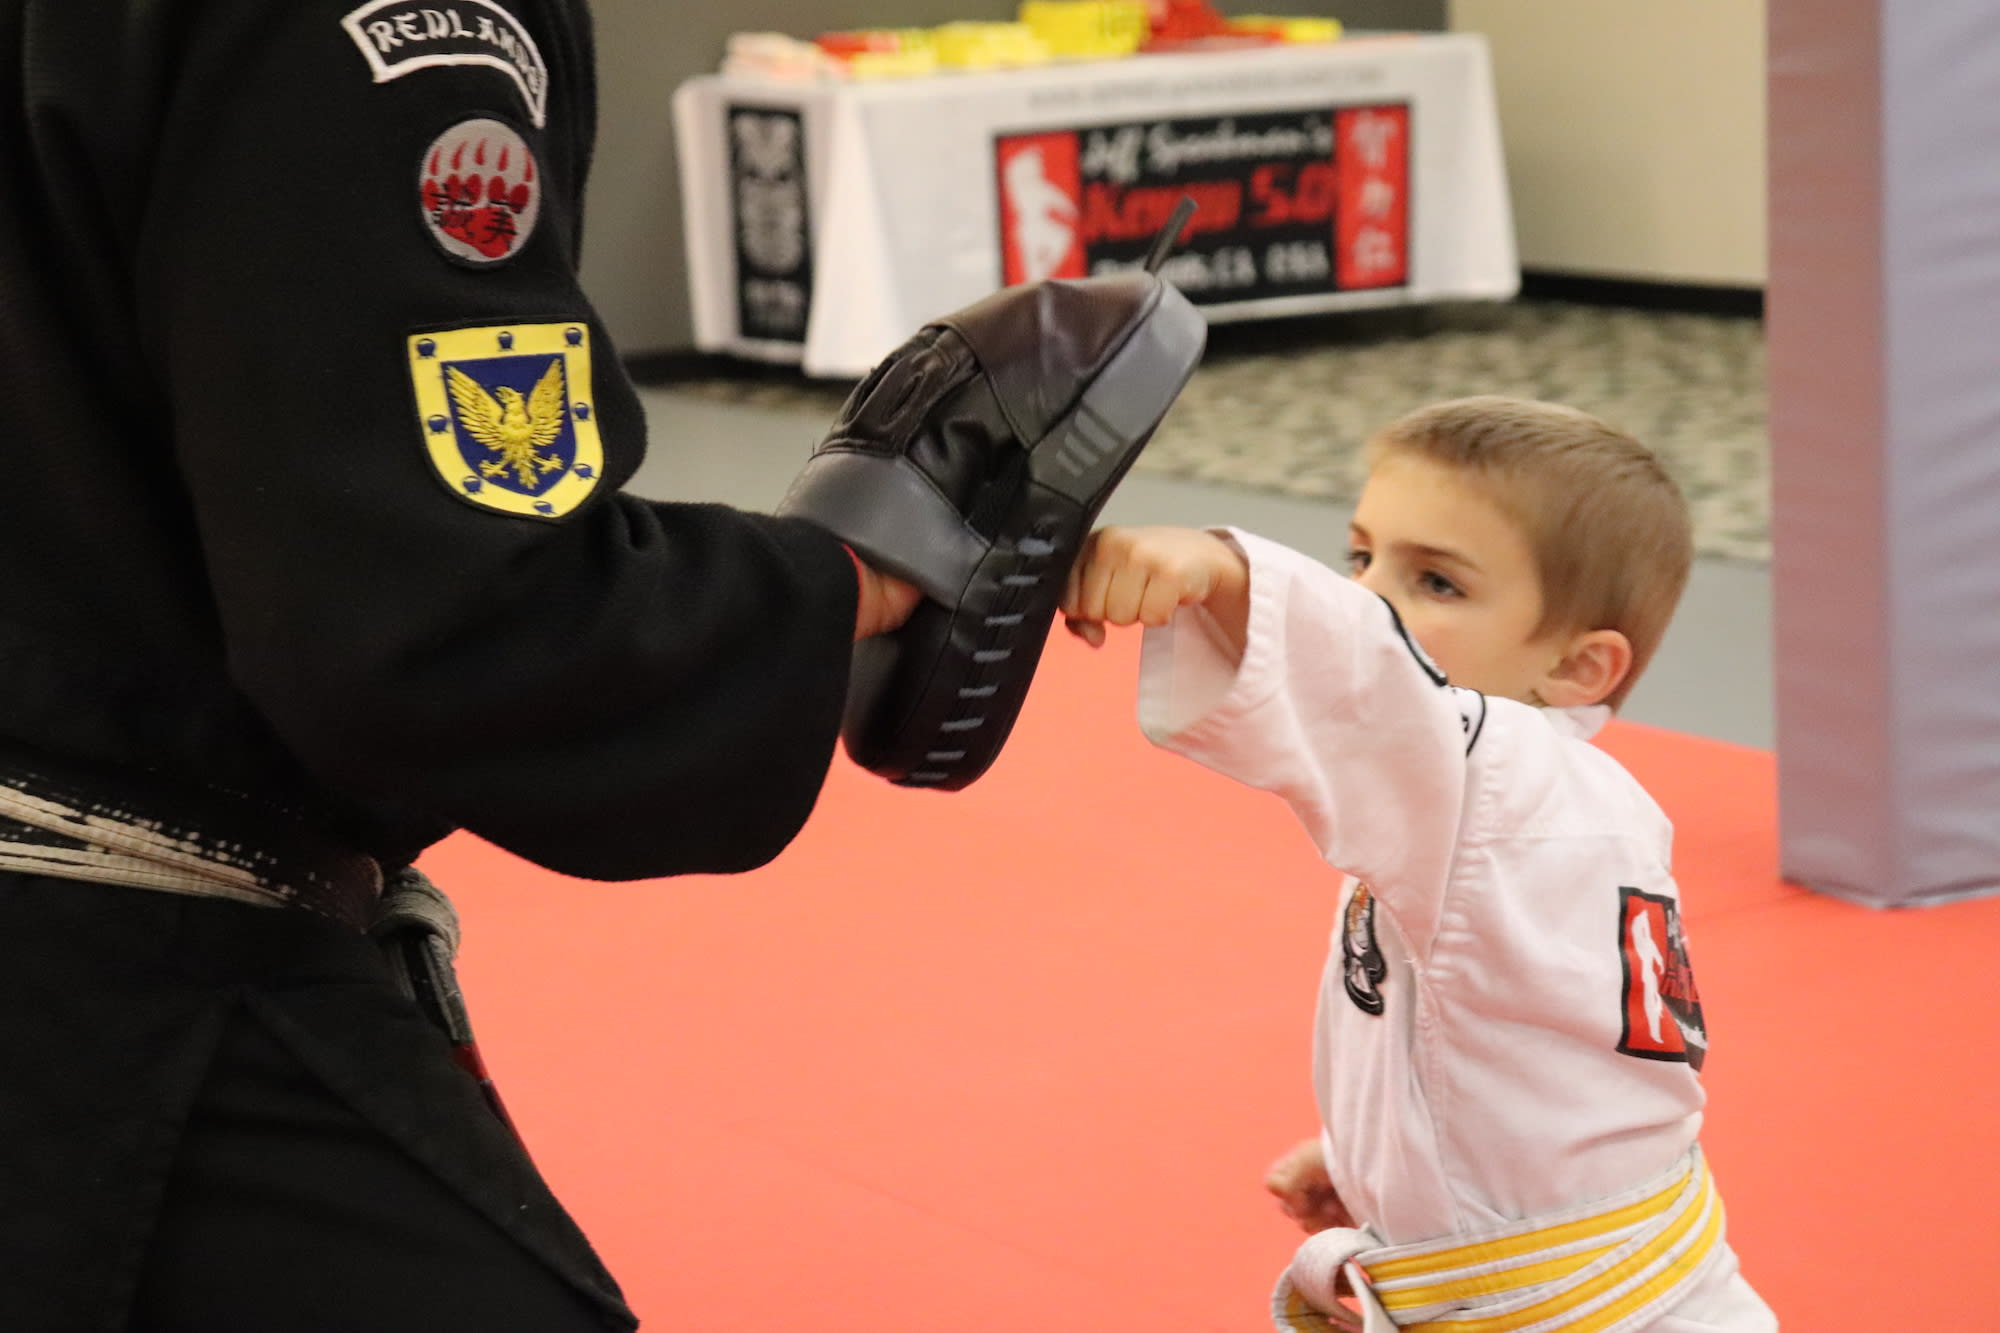 The Best Martial Arts Training In Redlands And Beyond!